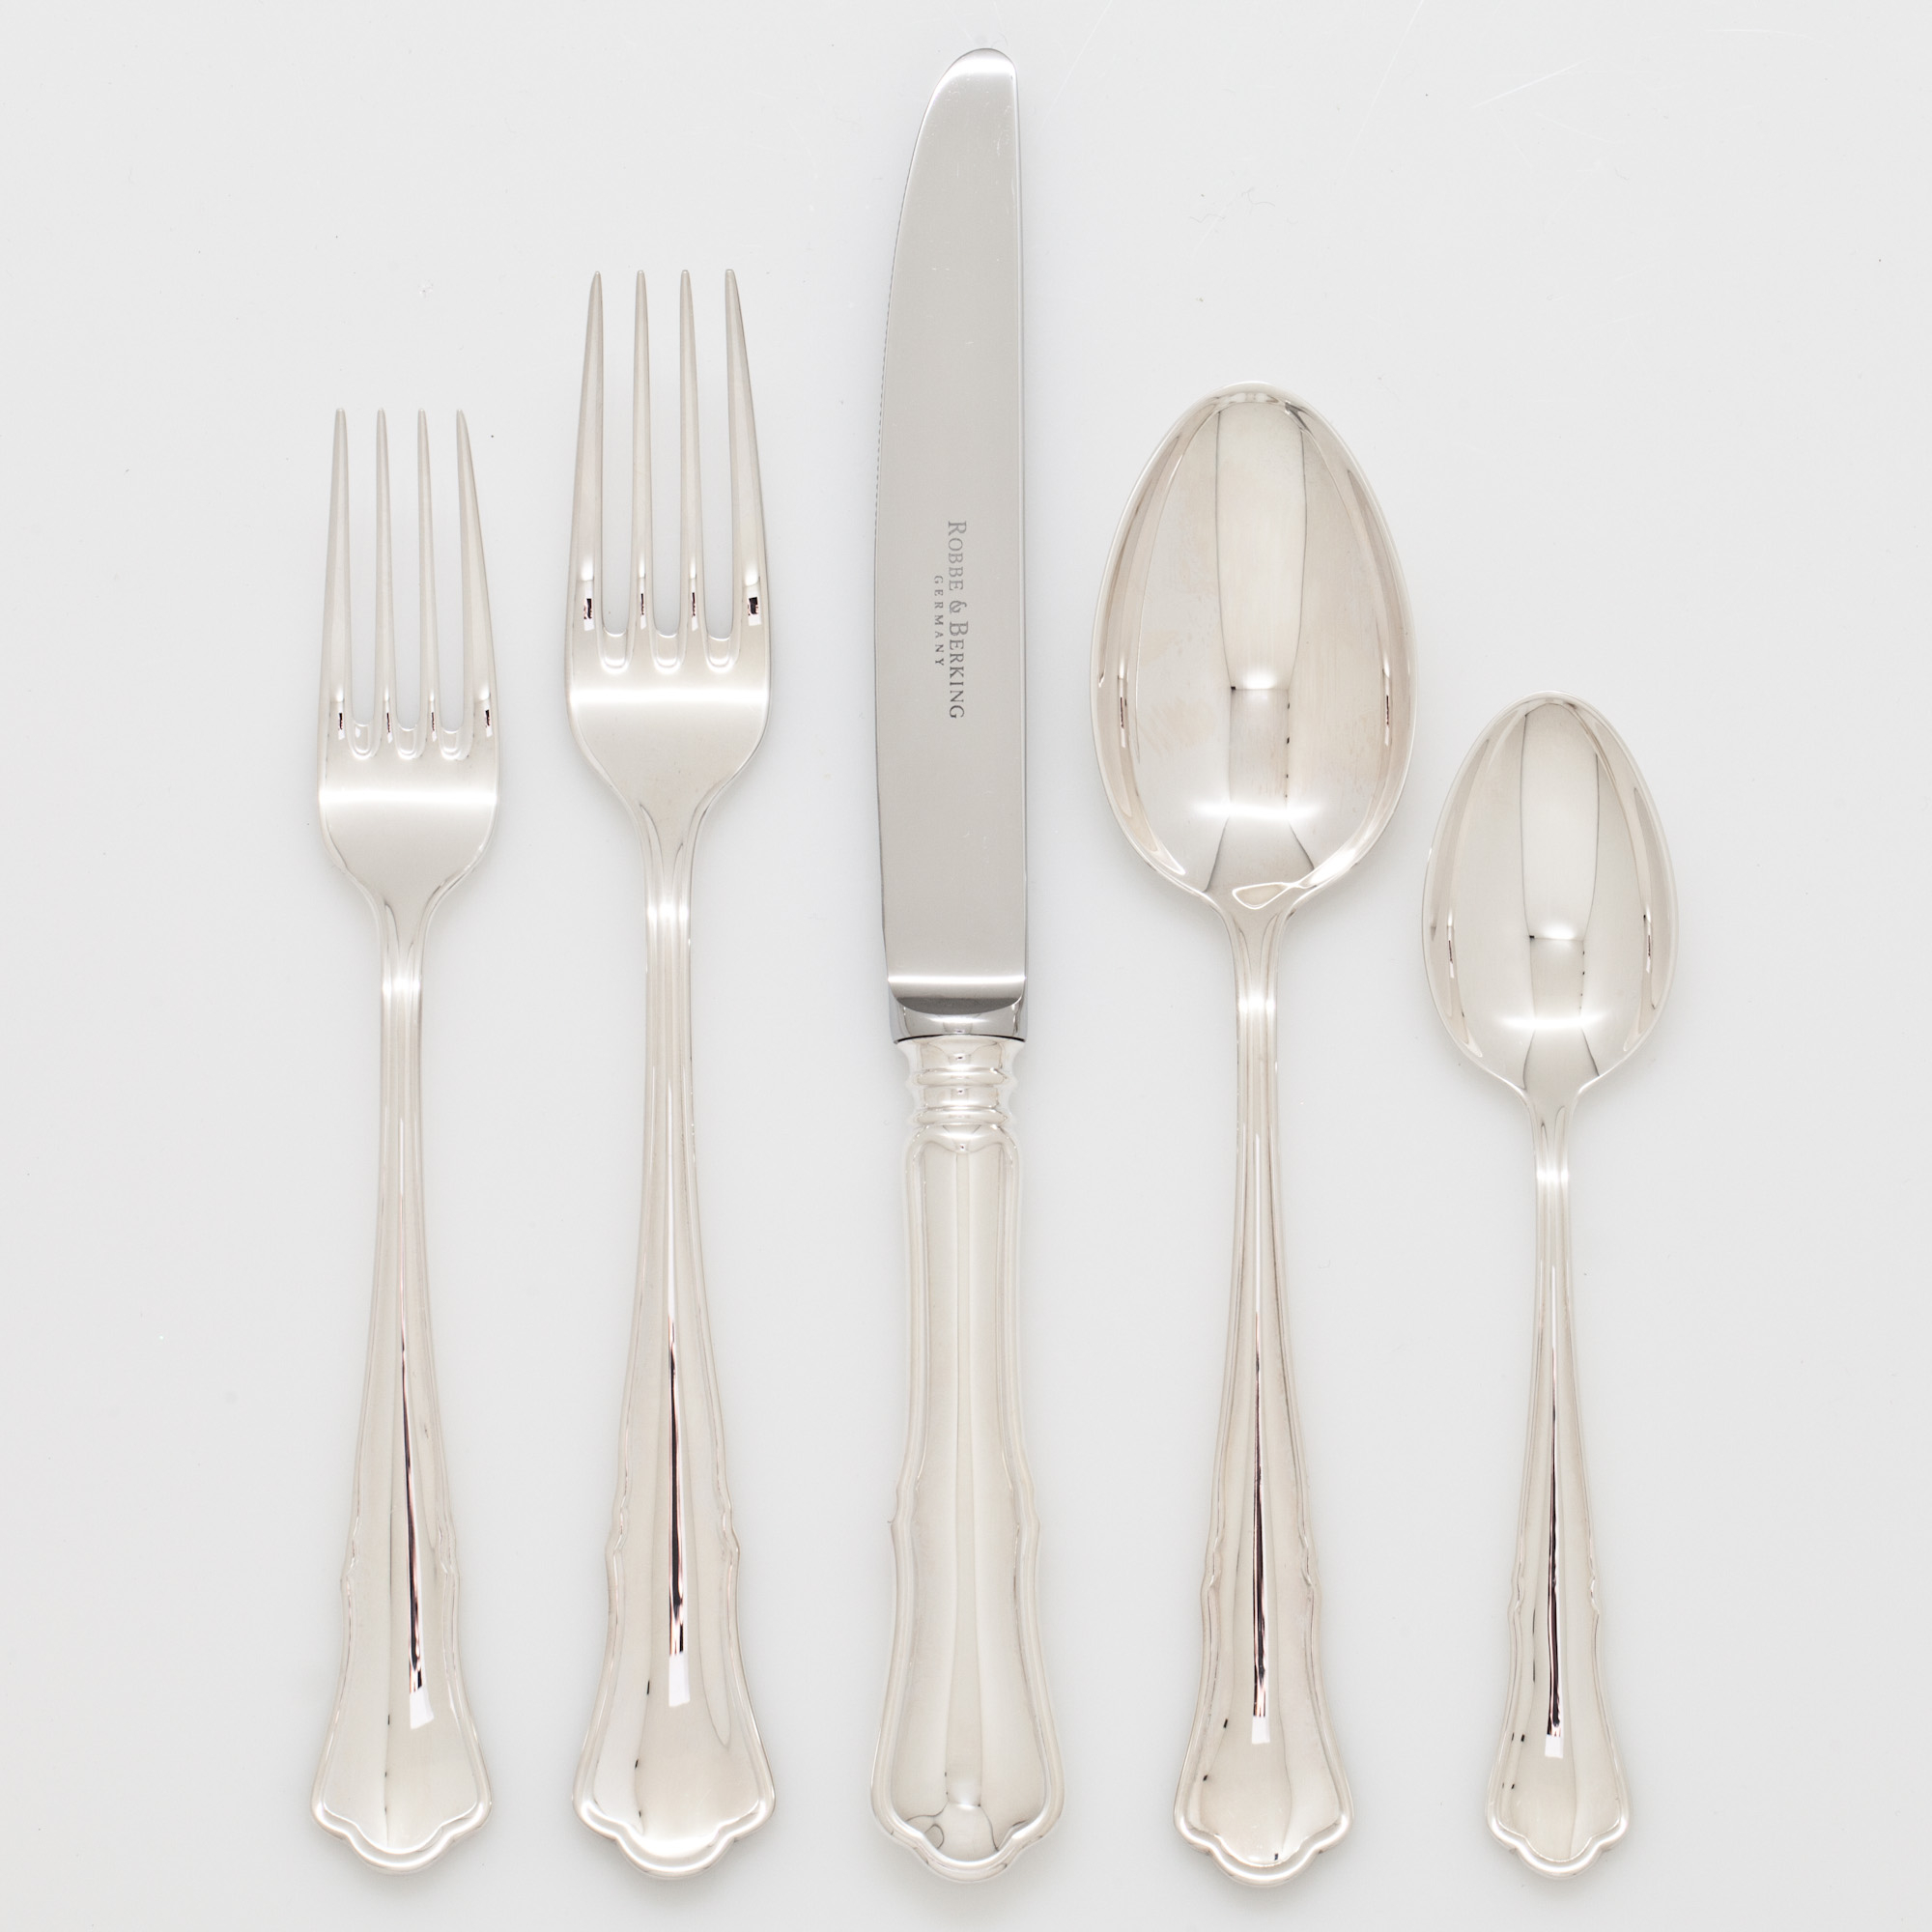 Robbe & Berking Alt Silver Plate Chippendale Flatware